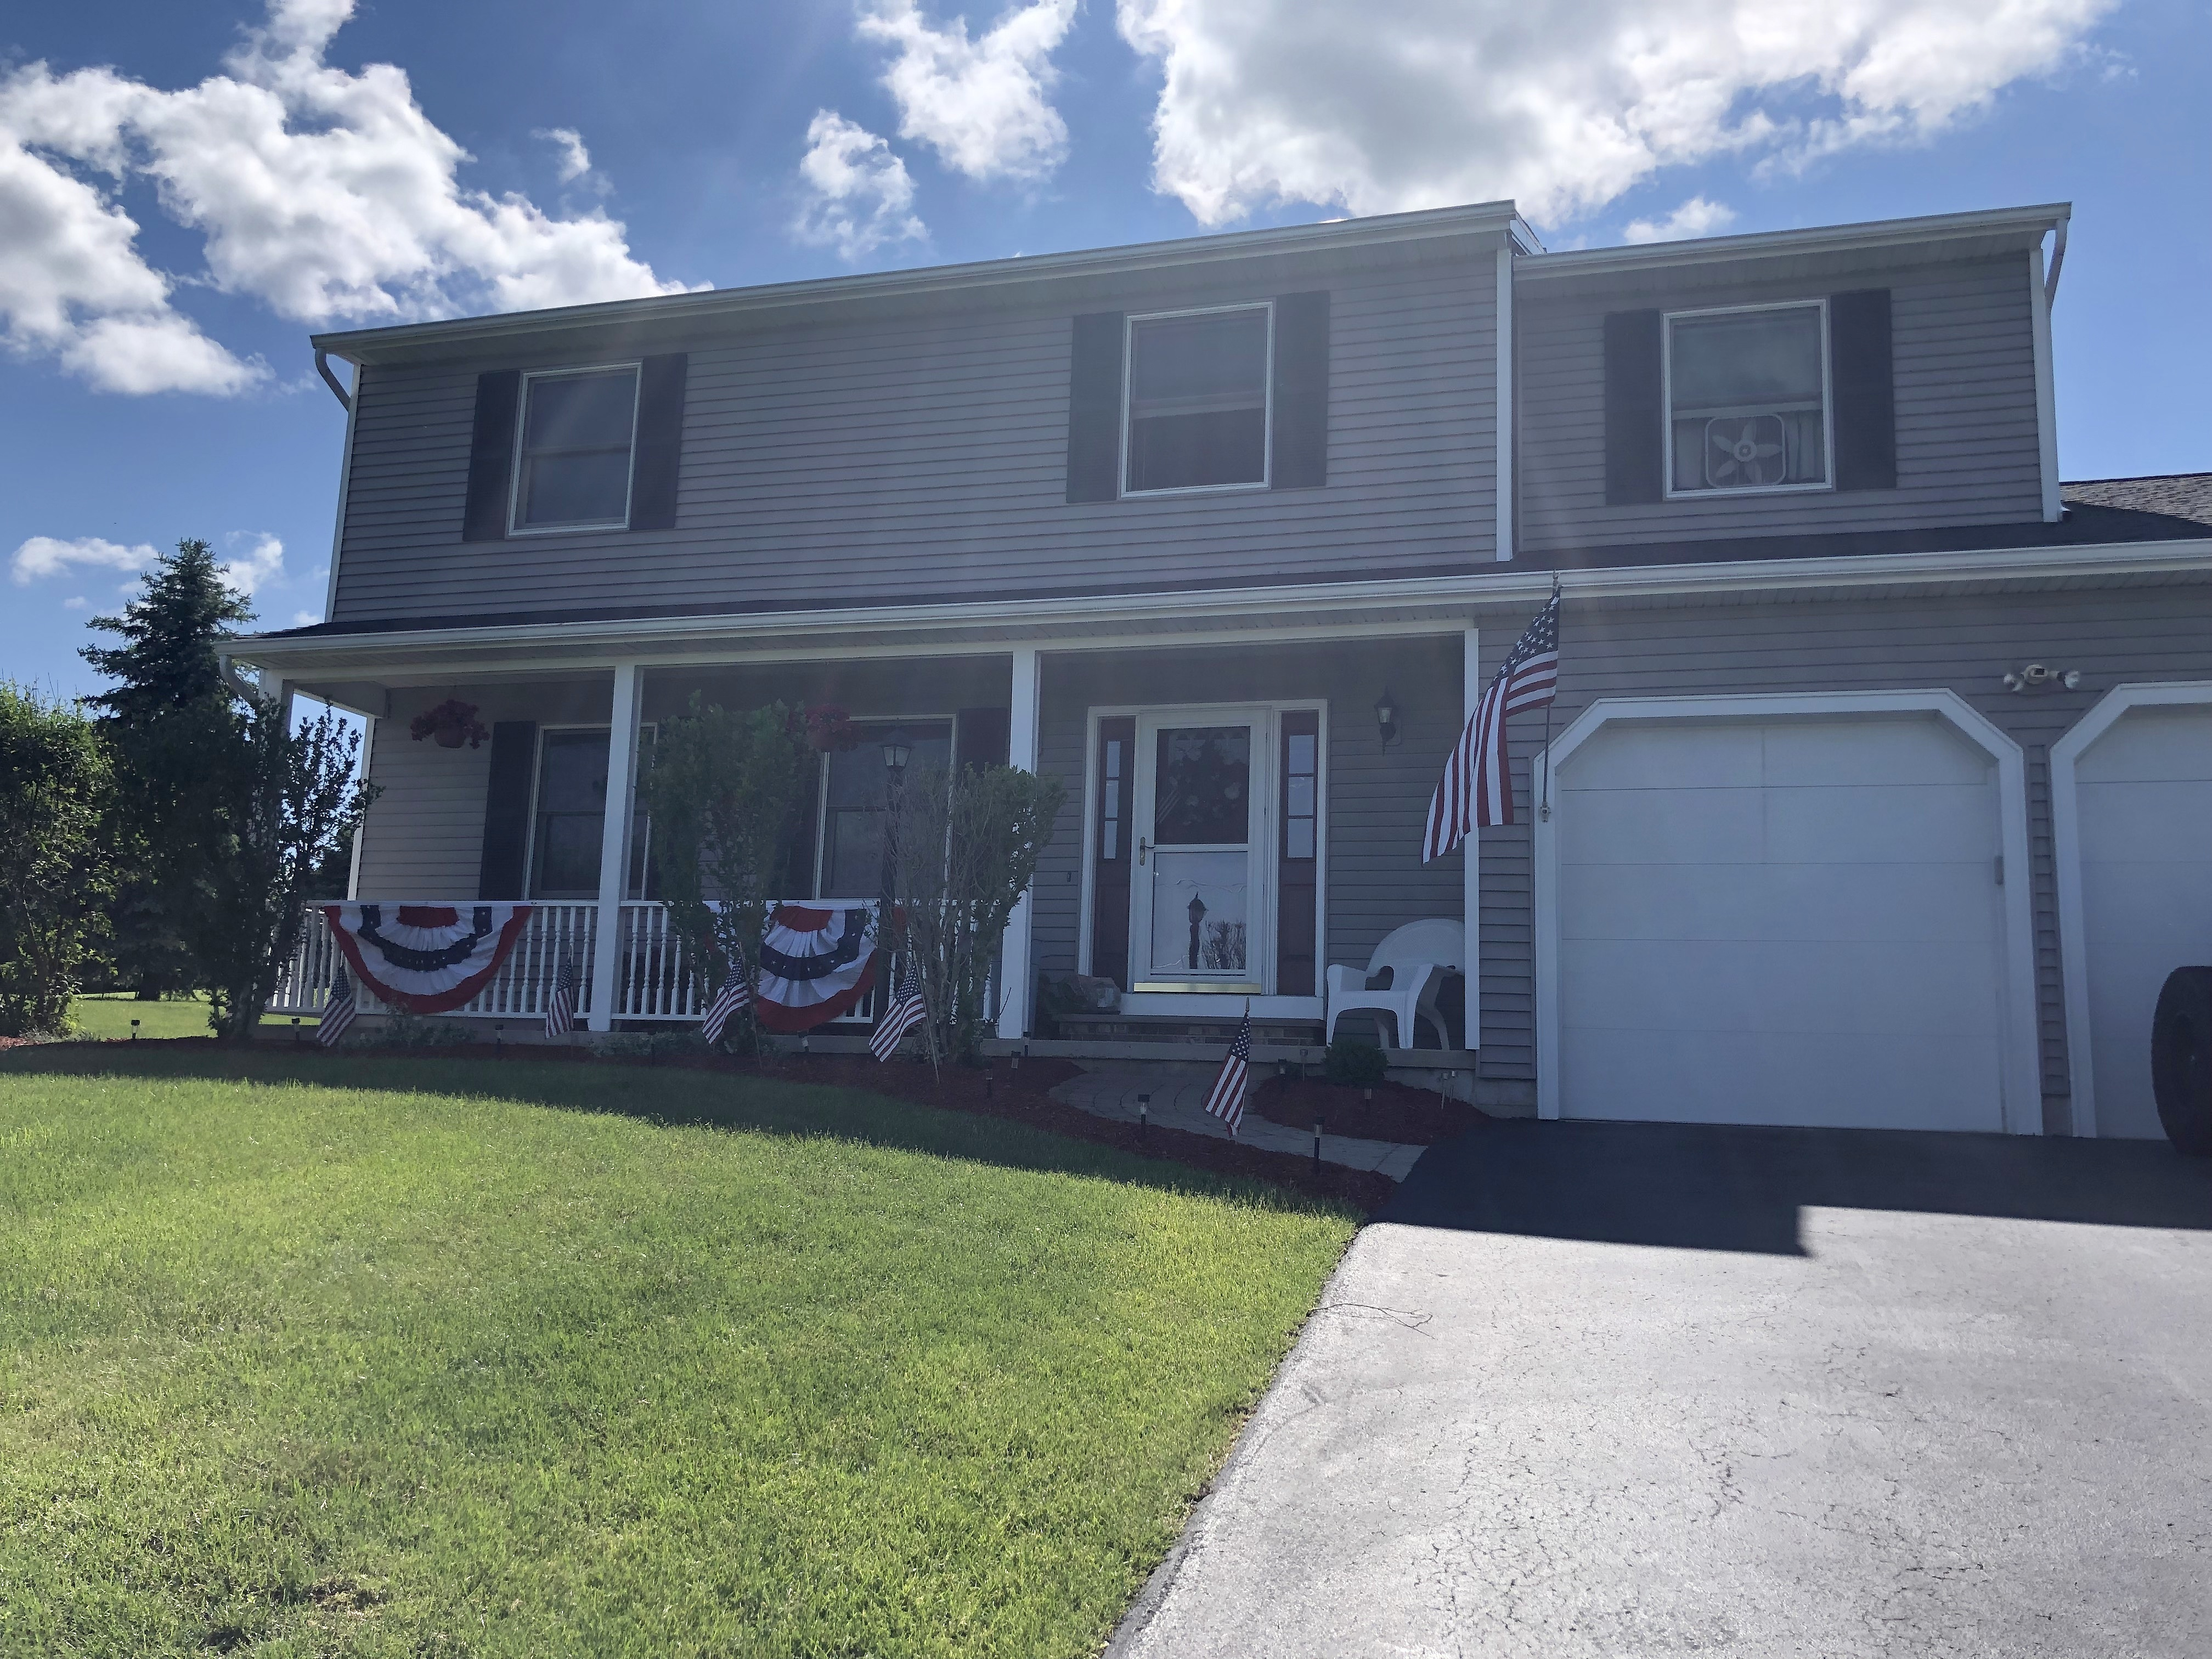 4 Bedrooms / 2.5 Bathrooms - Est. $1,501.00 / Month* for rent in Syracuse, NY